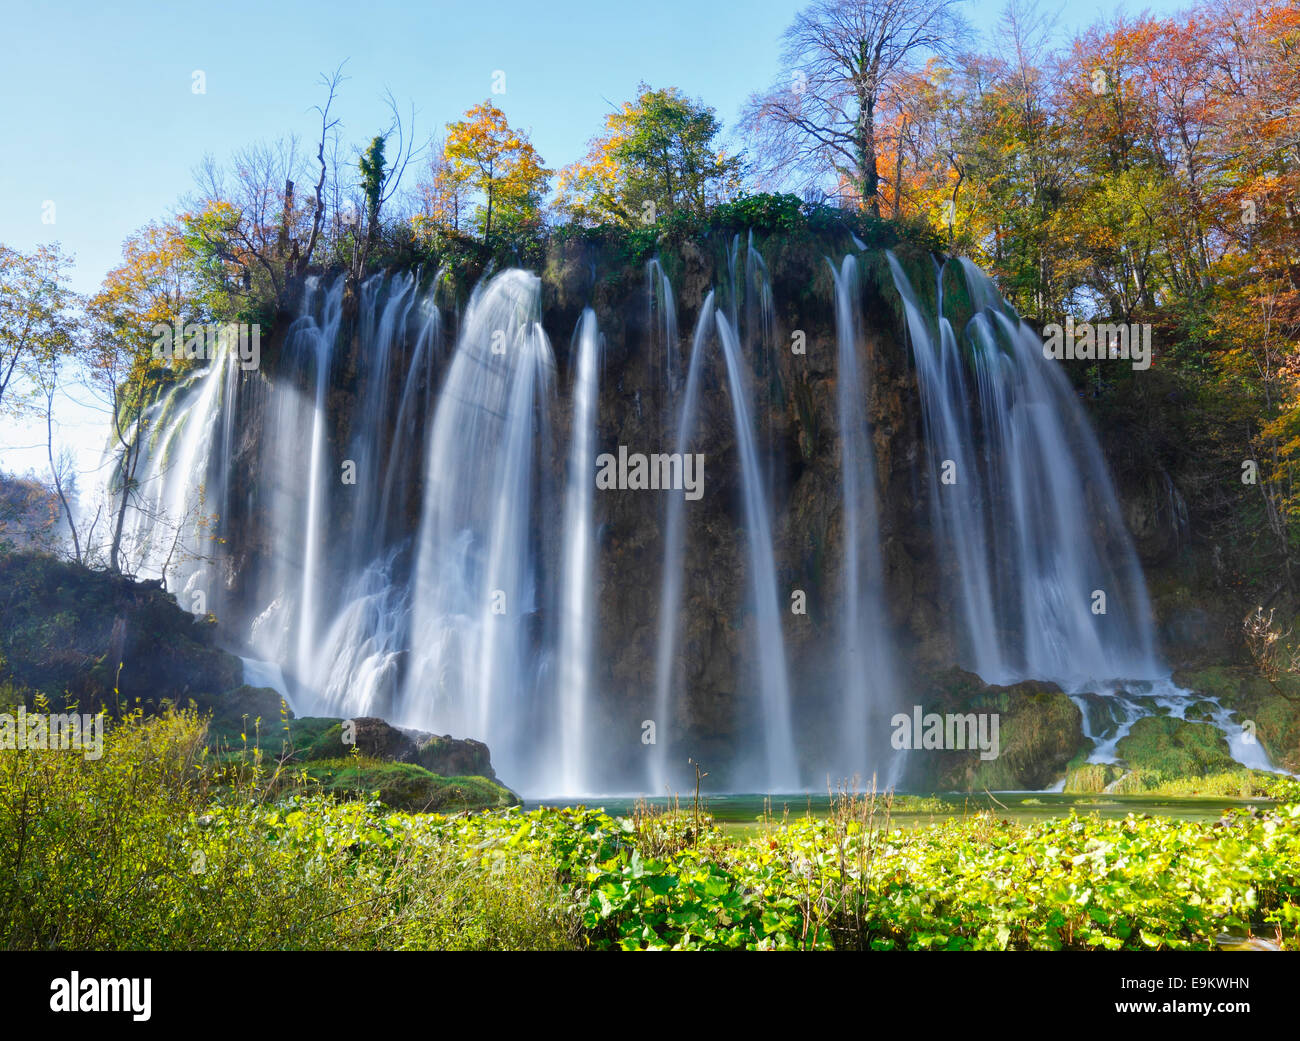 Le parc national des lacs de Plitvice, Croatie Photo Stock